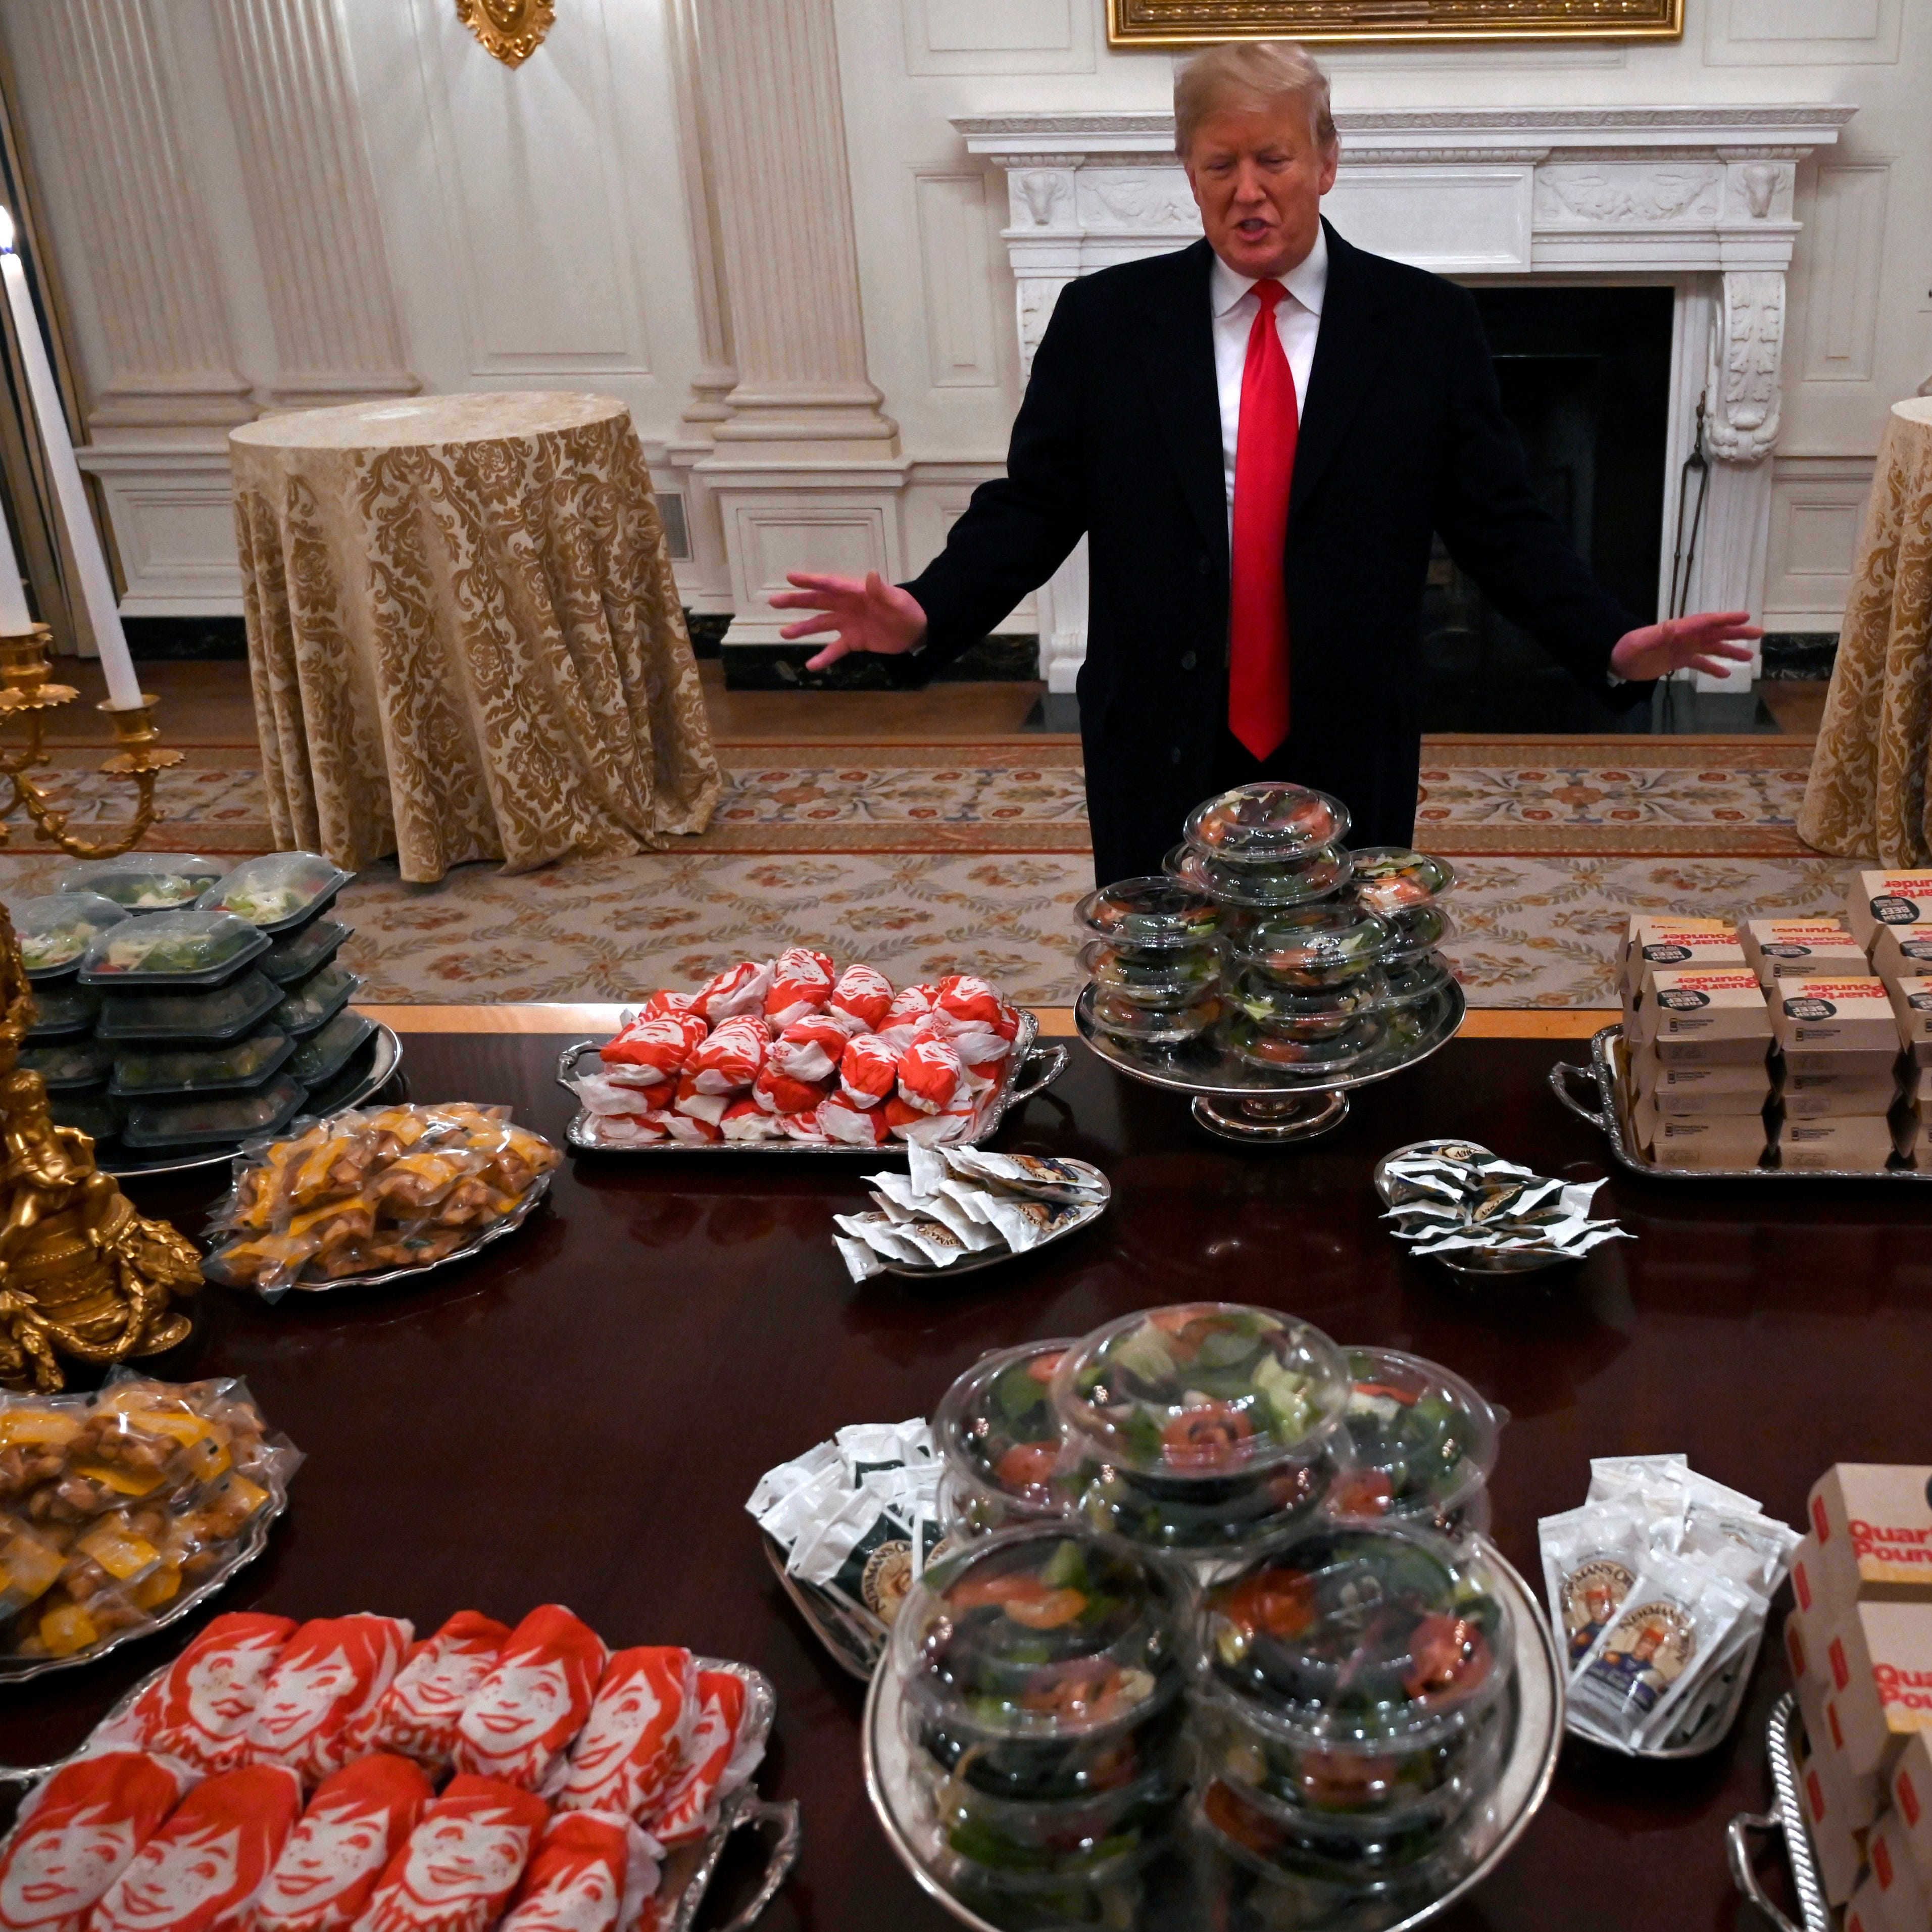 Clemson football team visits White House, greeted by President Donald Trump and fast food